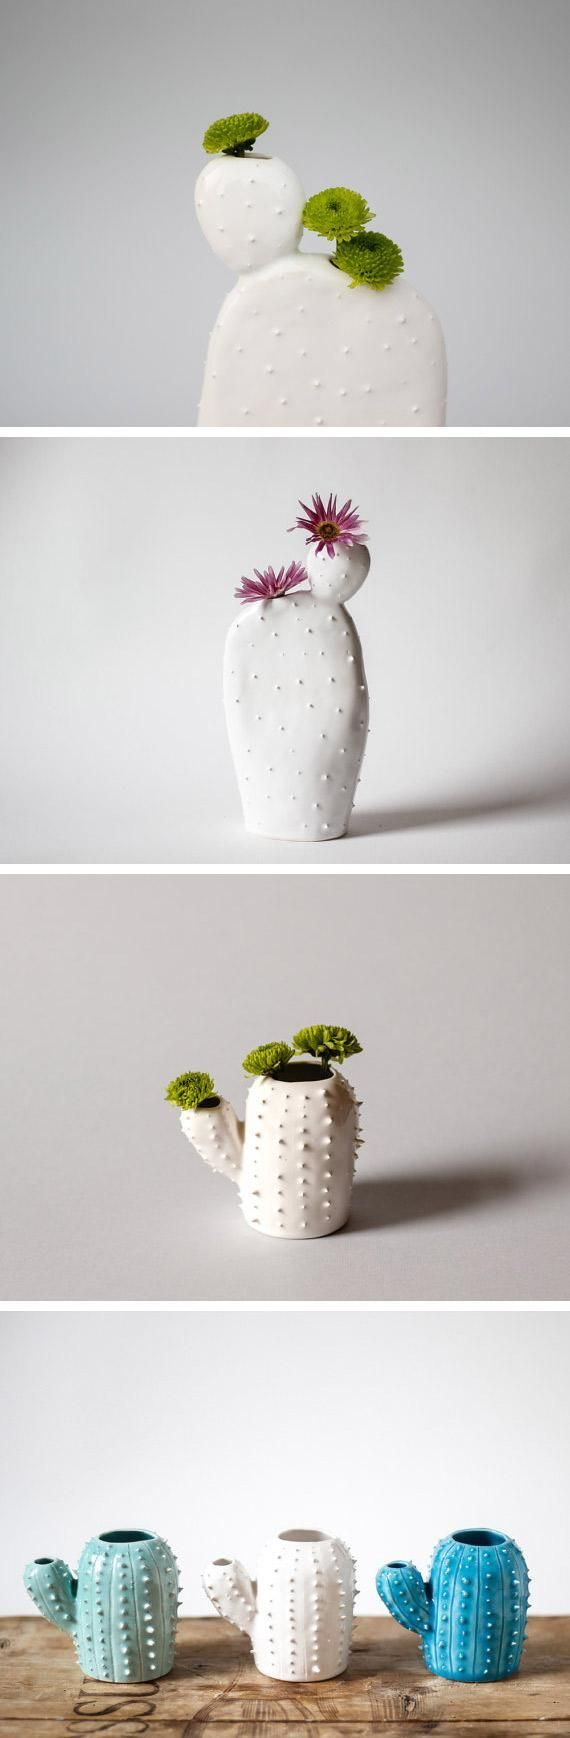 Planters and vases that look like cactus